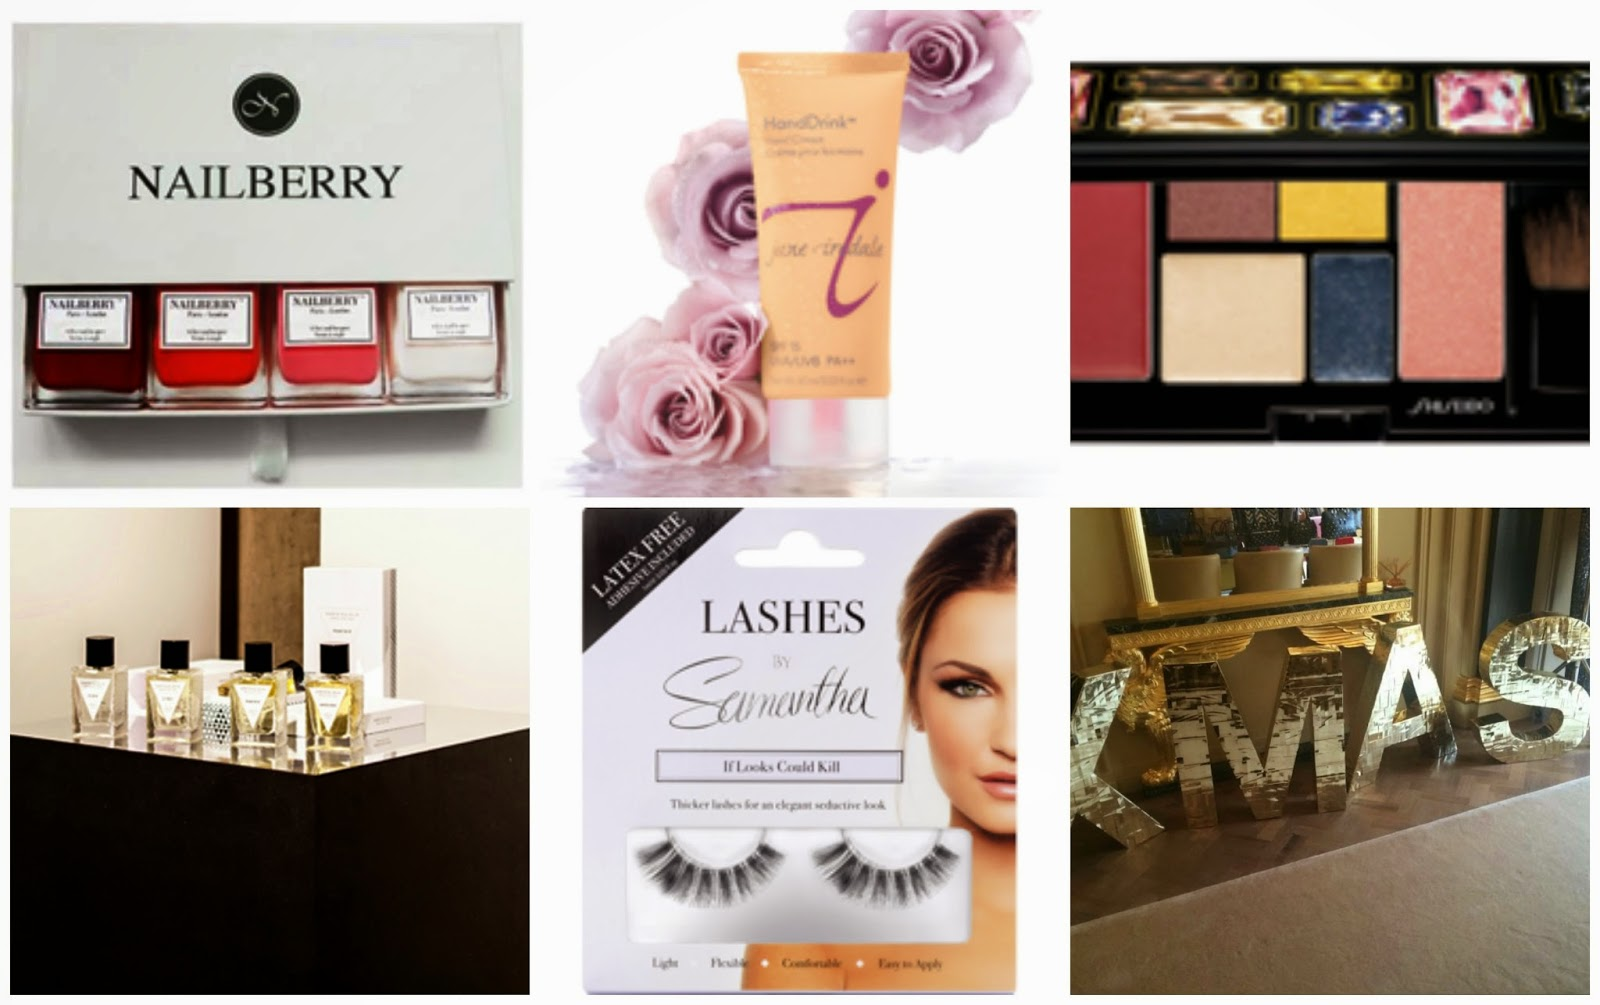 The Daily Beauty Report (26.11.14)